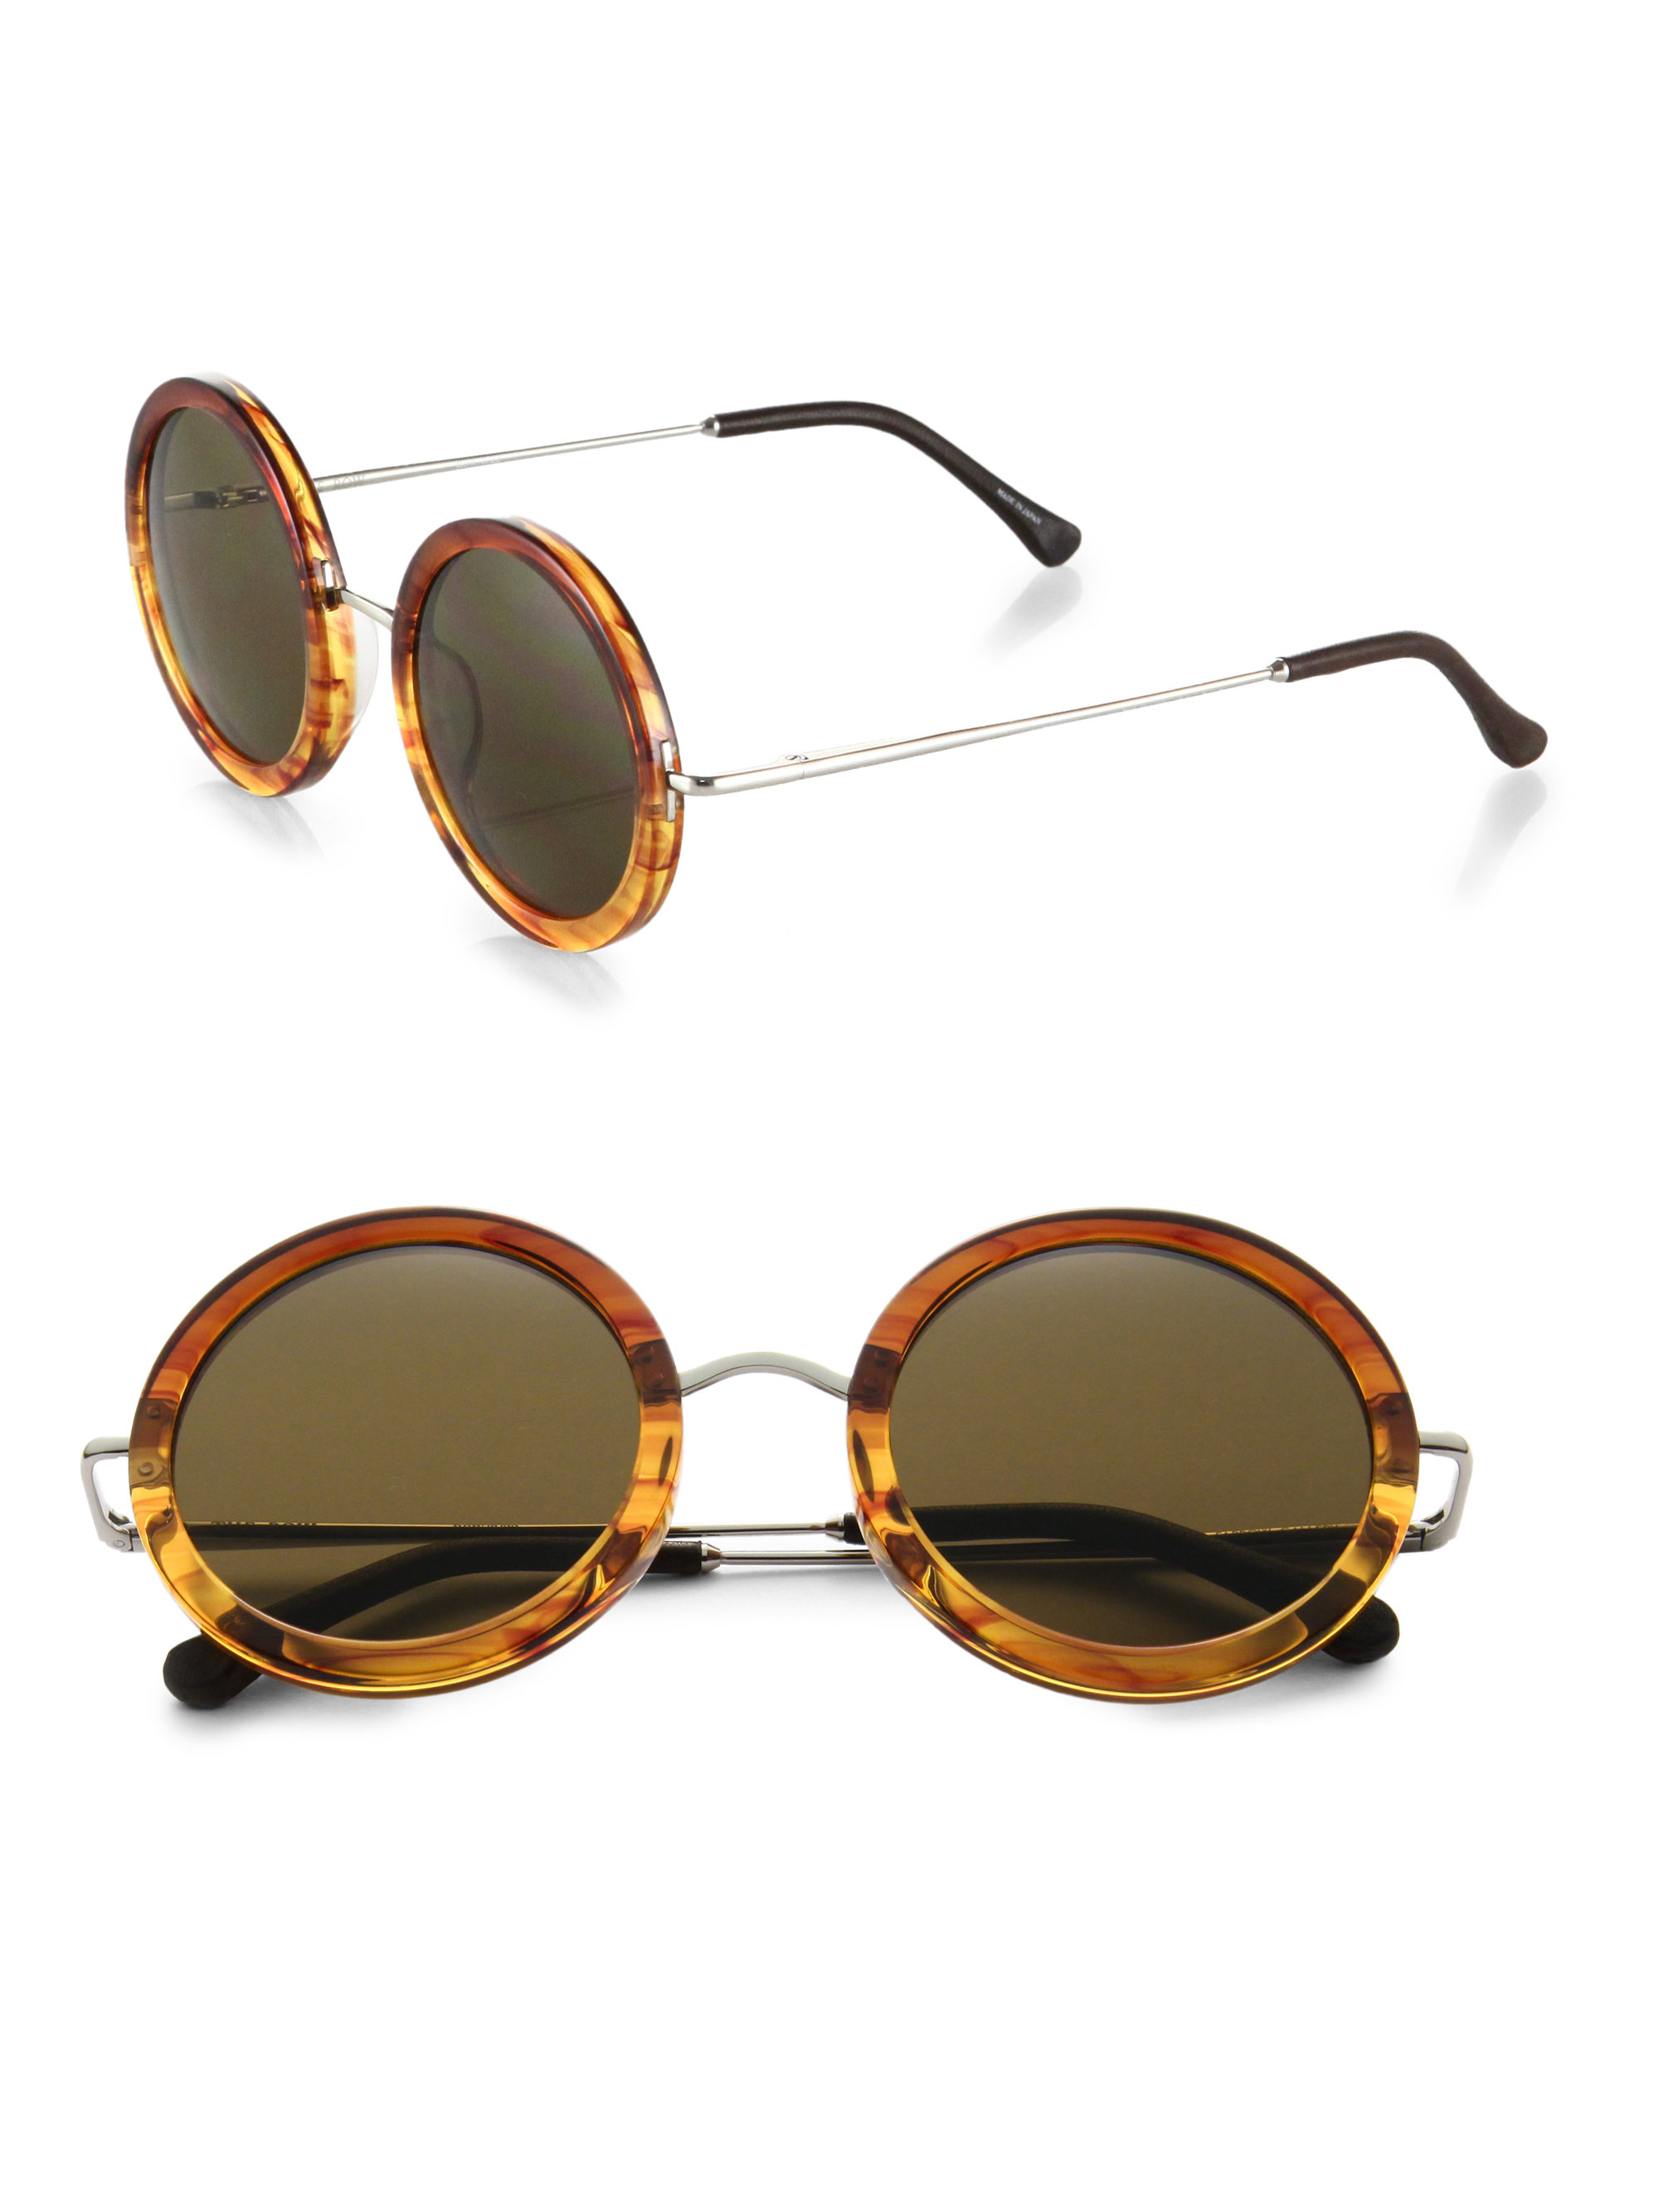 Lyst The Row Round Plastic & Metal Sunglasses in Brown